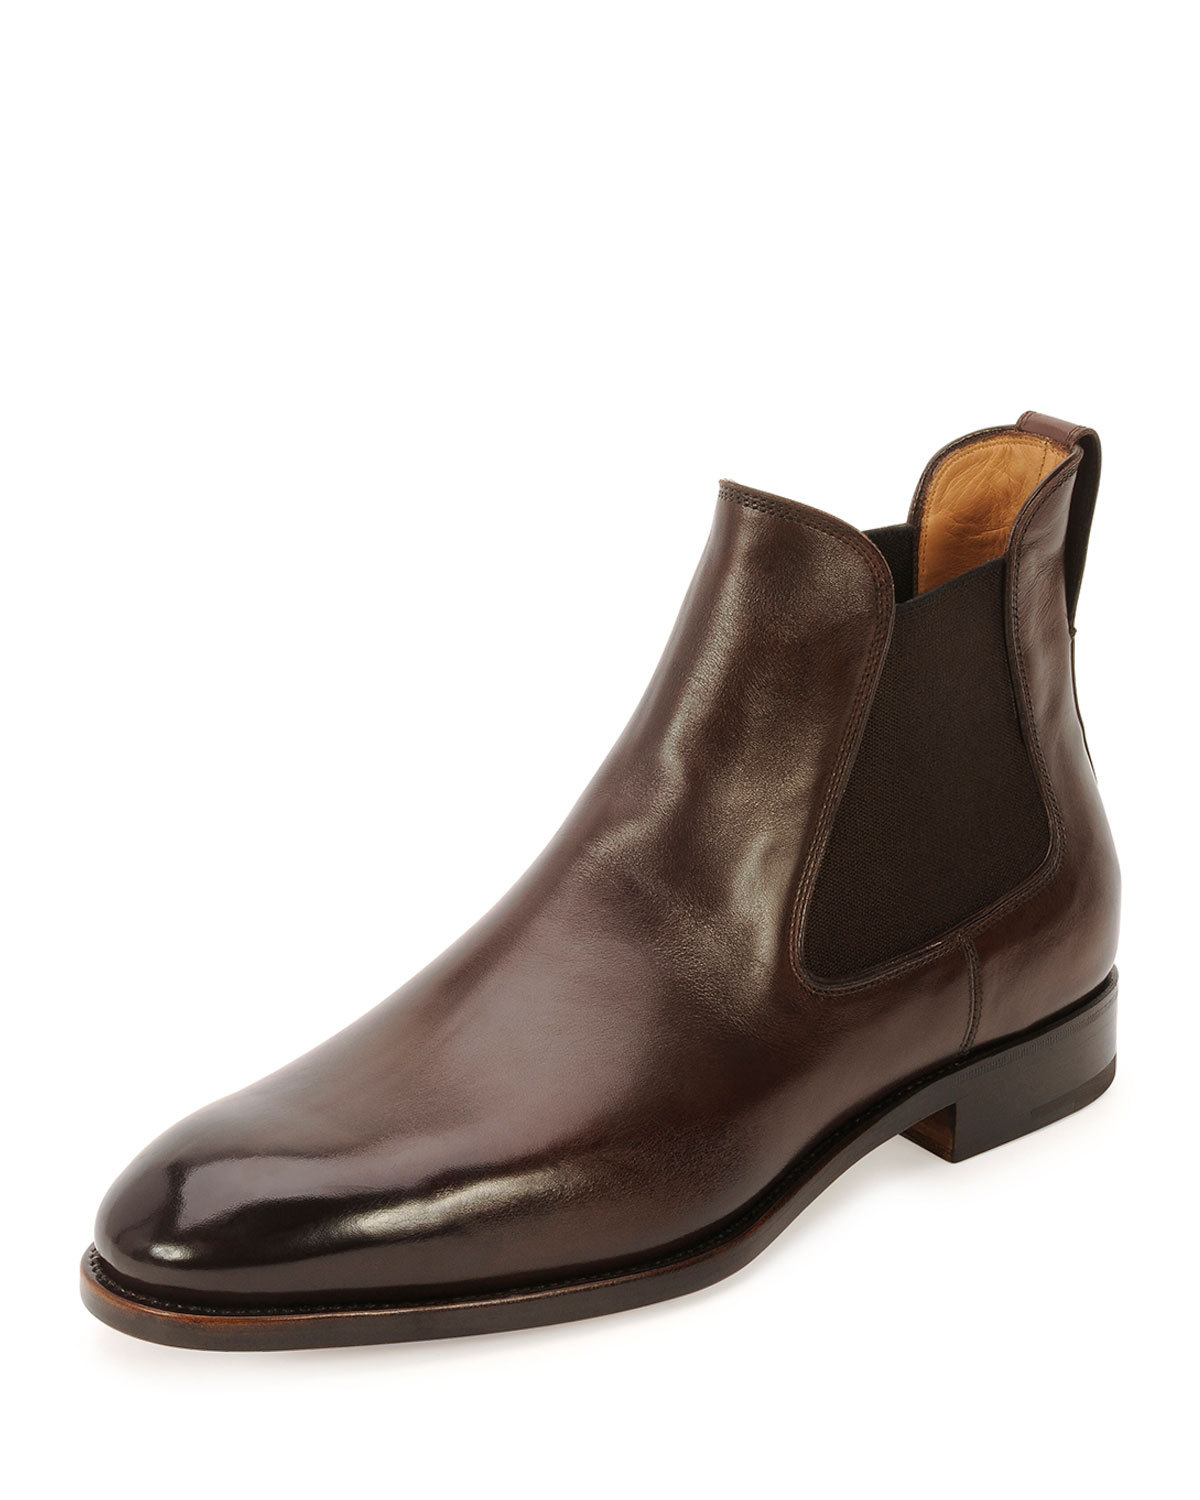 handmade brown leather boots ankle high real